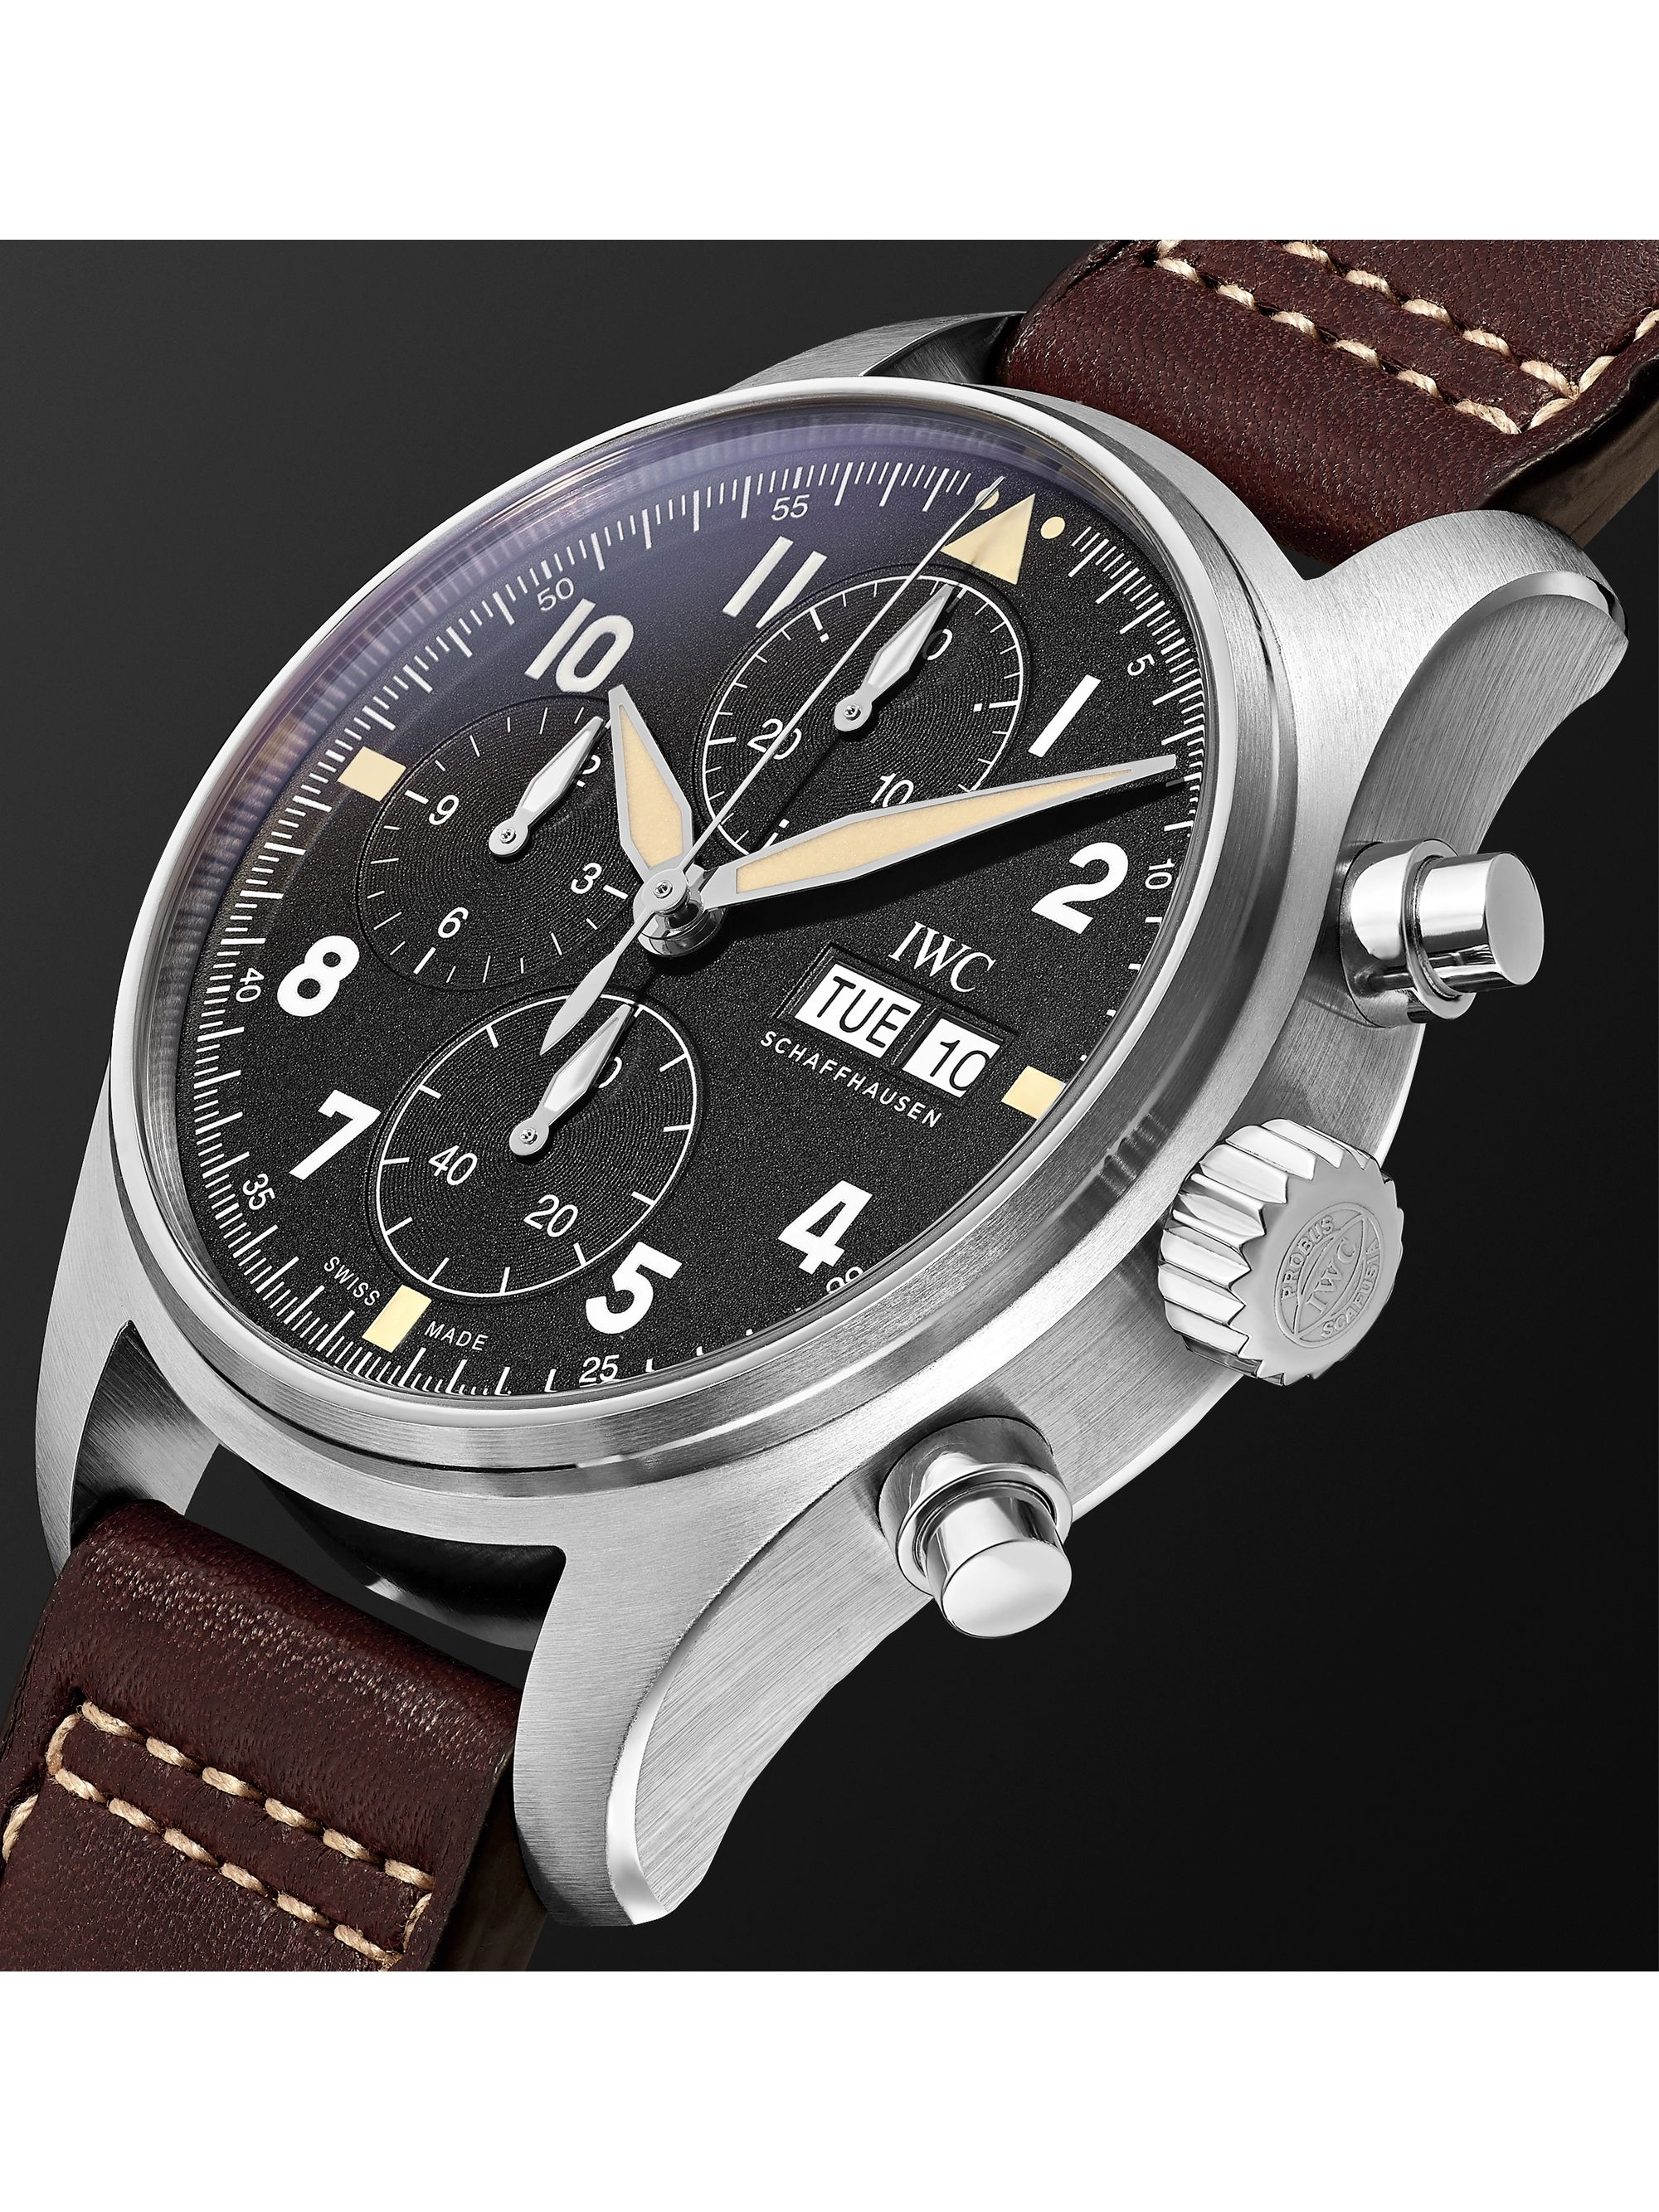 IWC SCHAFFHAUSEN Pilot's Spitfire Automatic Chronograph 41mm Stainless Steel and Leather Watch, Ref. No. IW387903